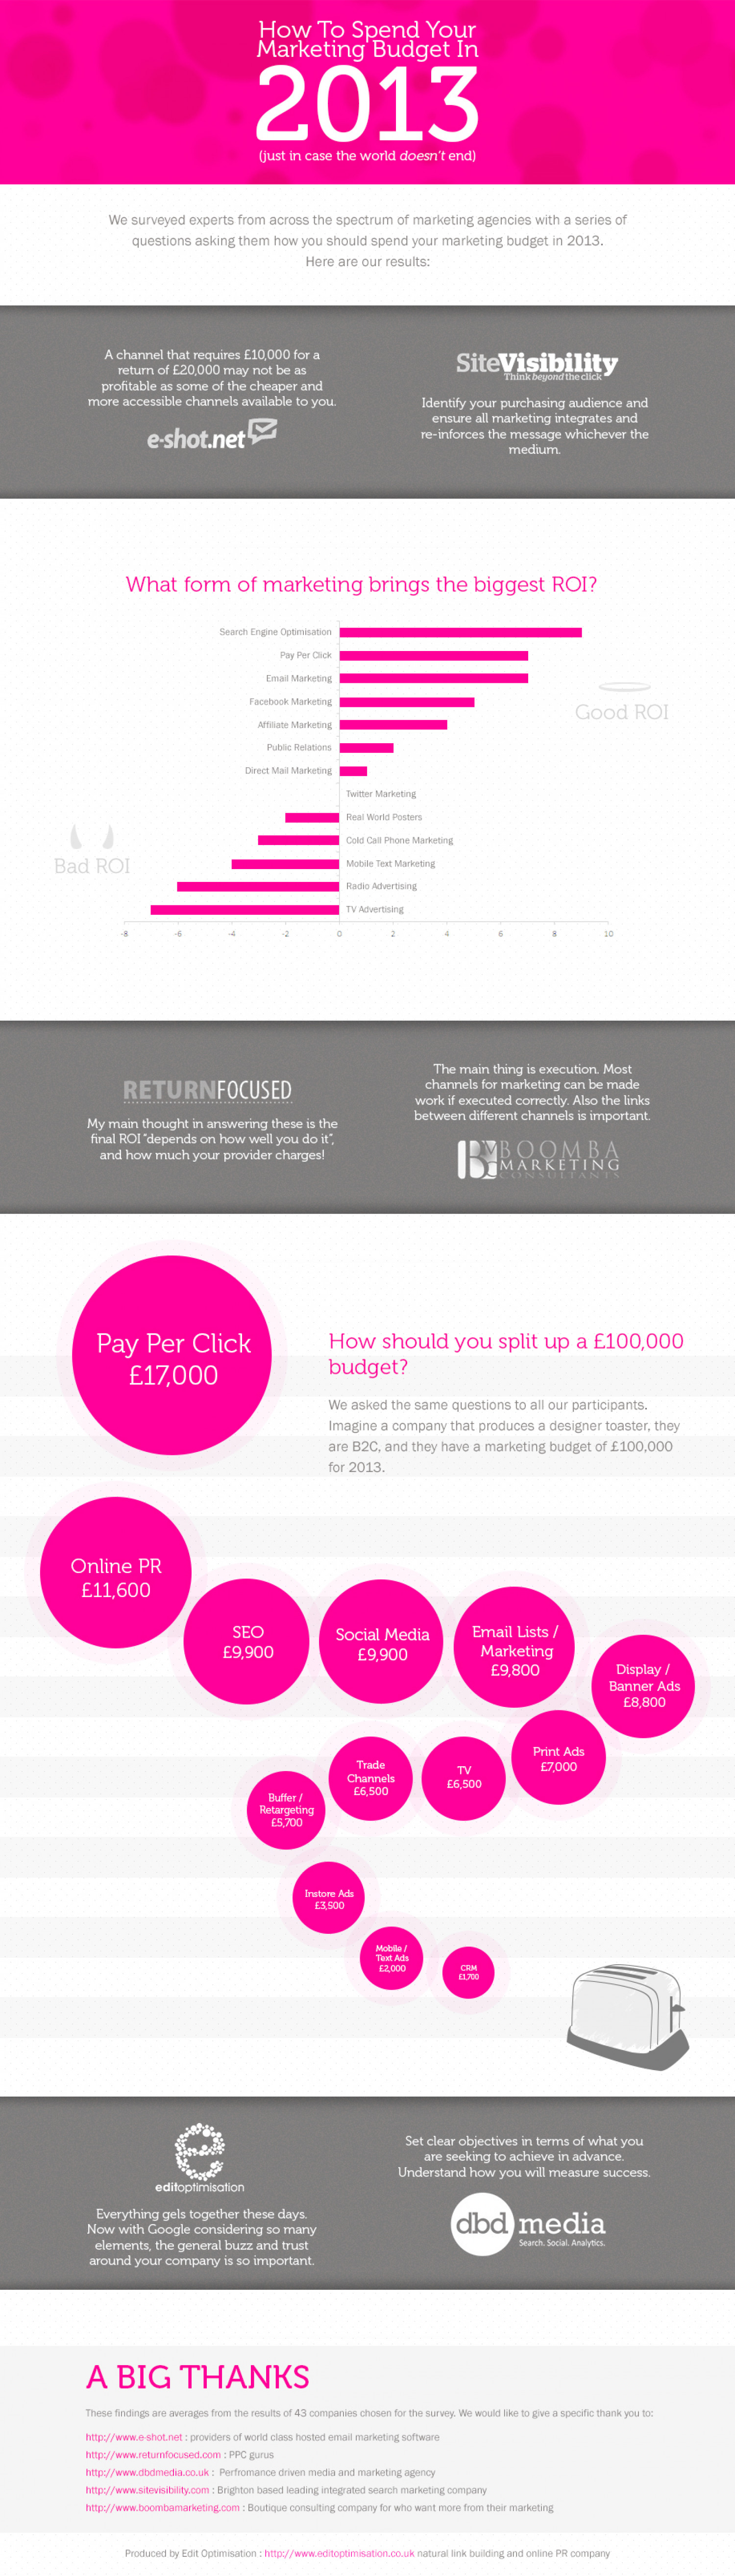 How to spend your marketing budget in 2013 Infographic